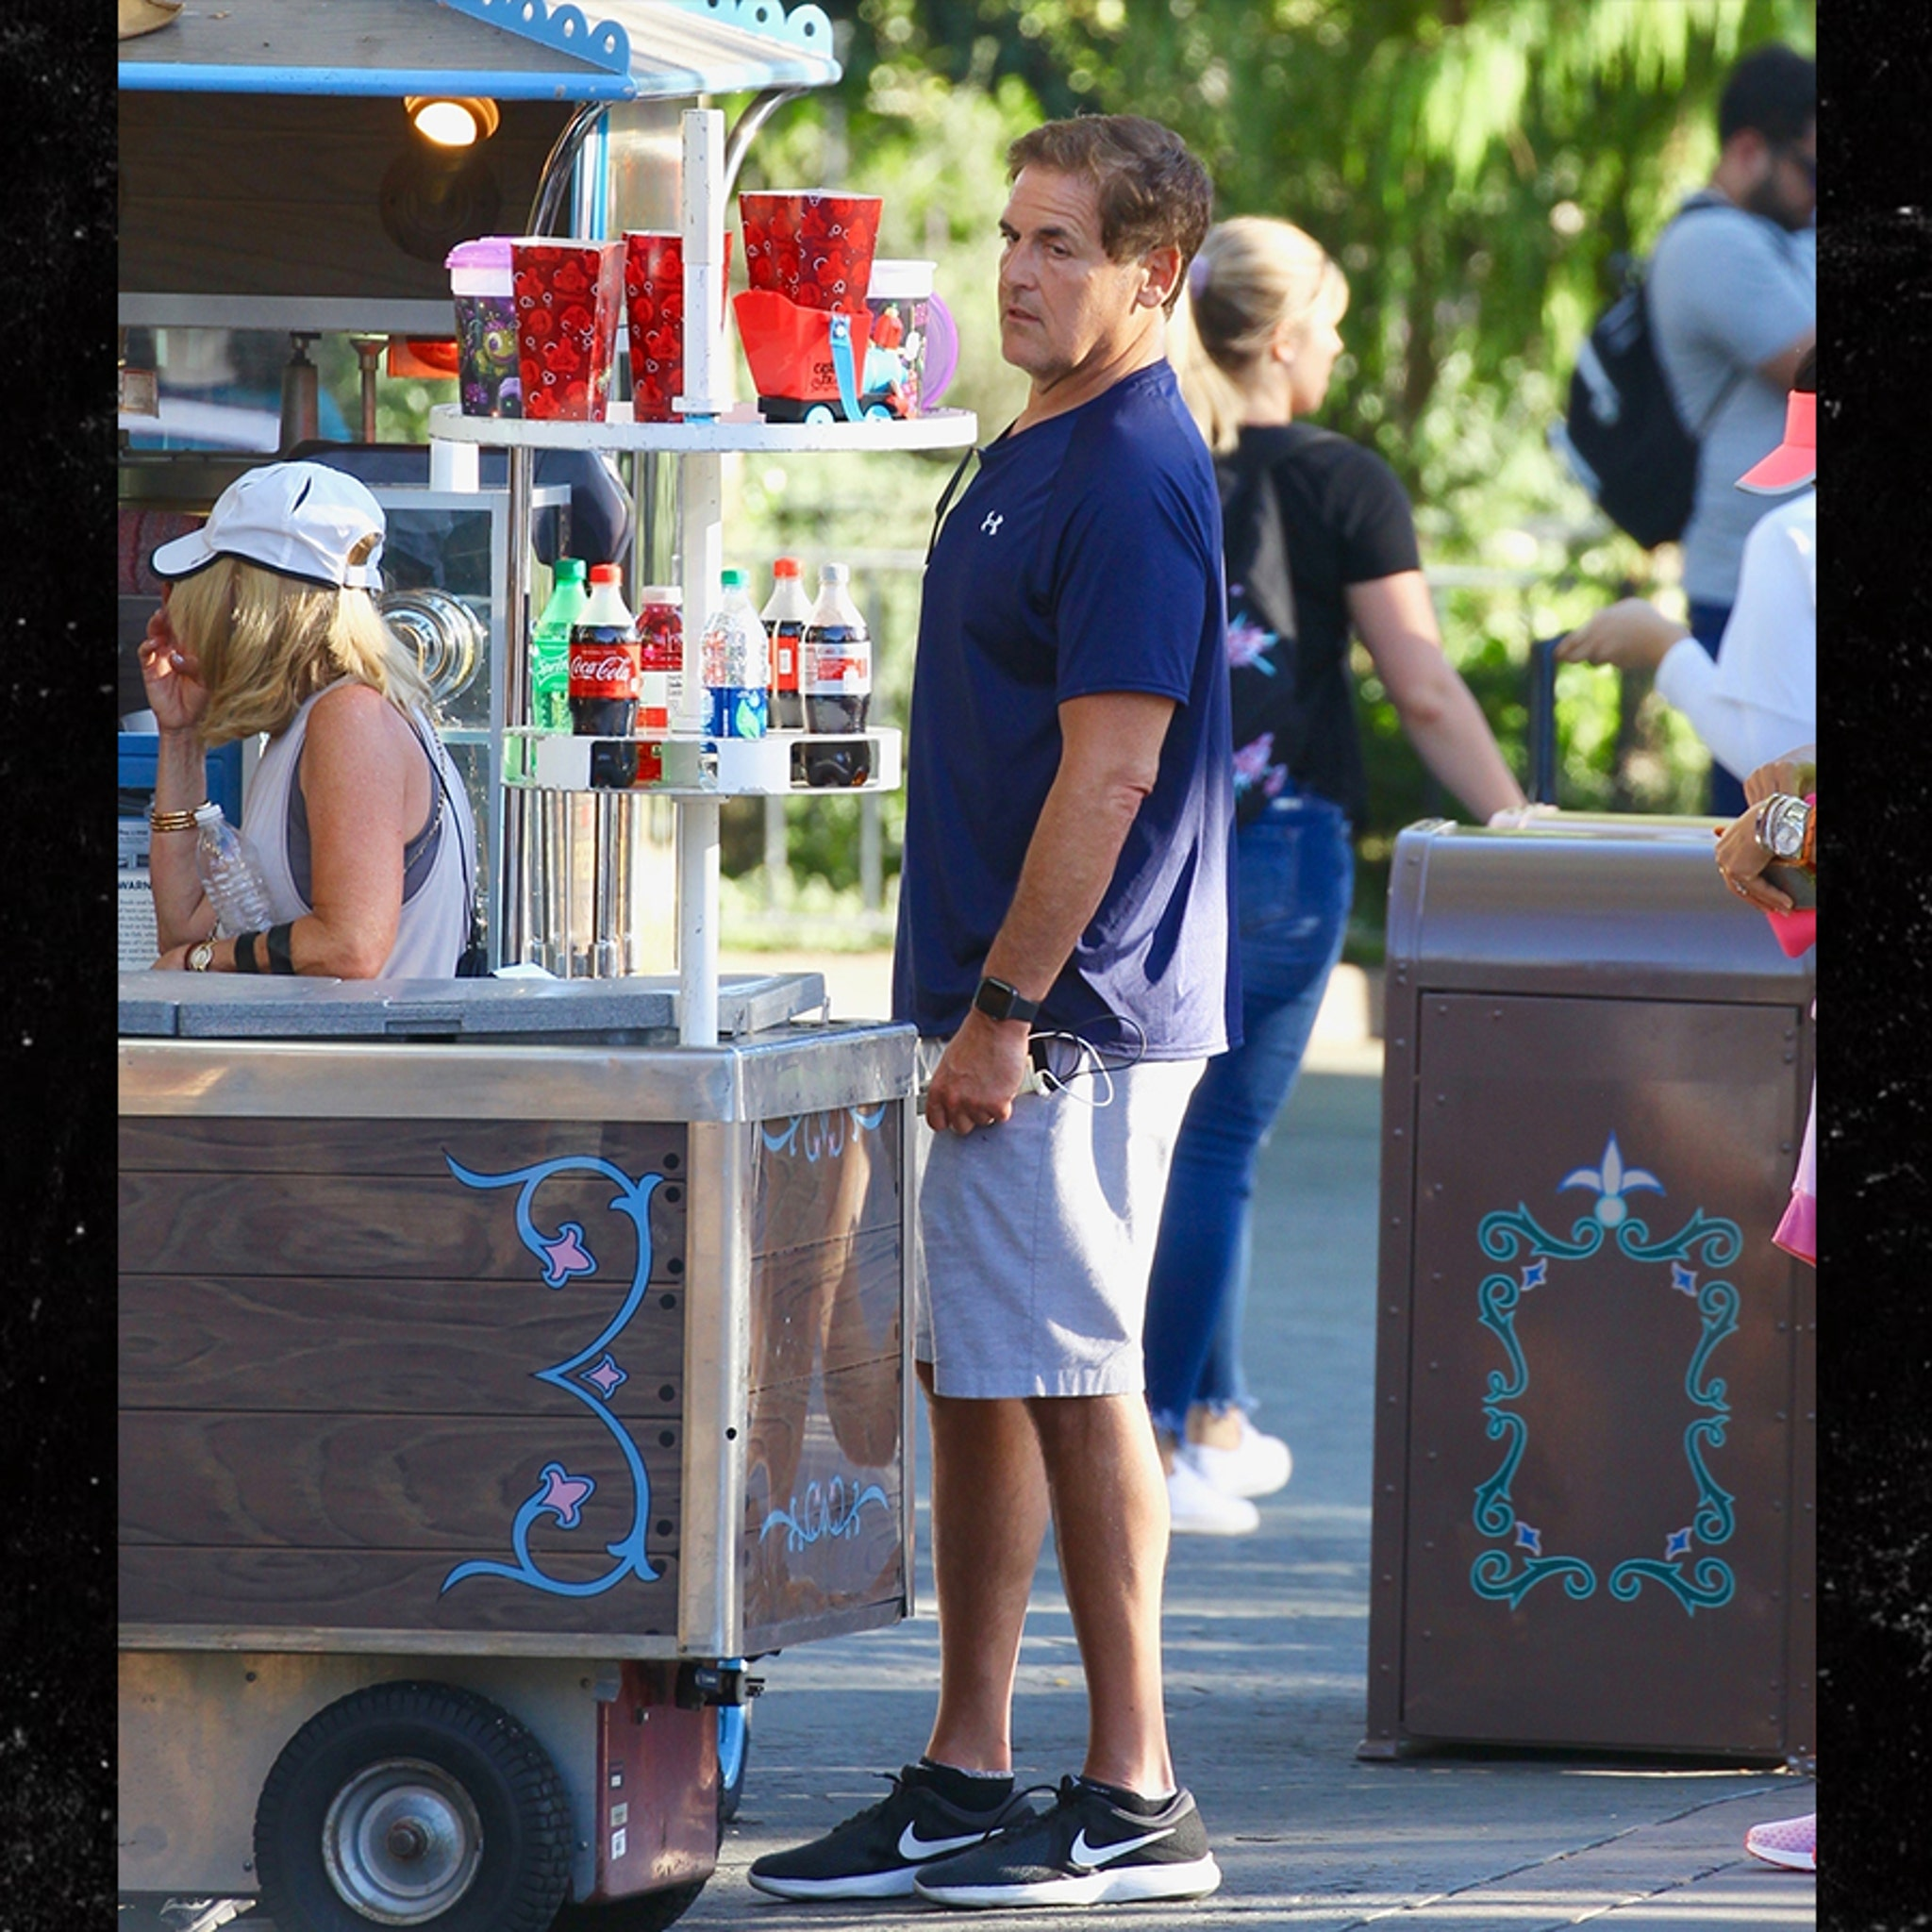 Mark Cuban Takes Healthy Route on Trip at Disneyland